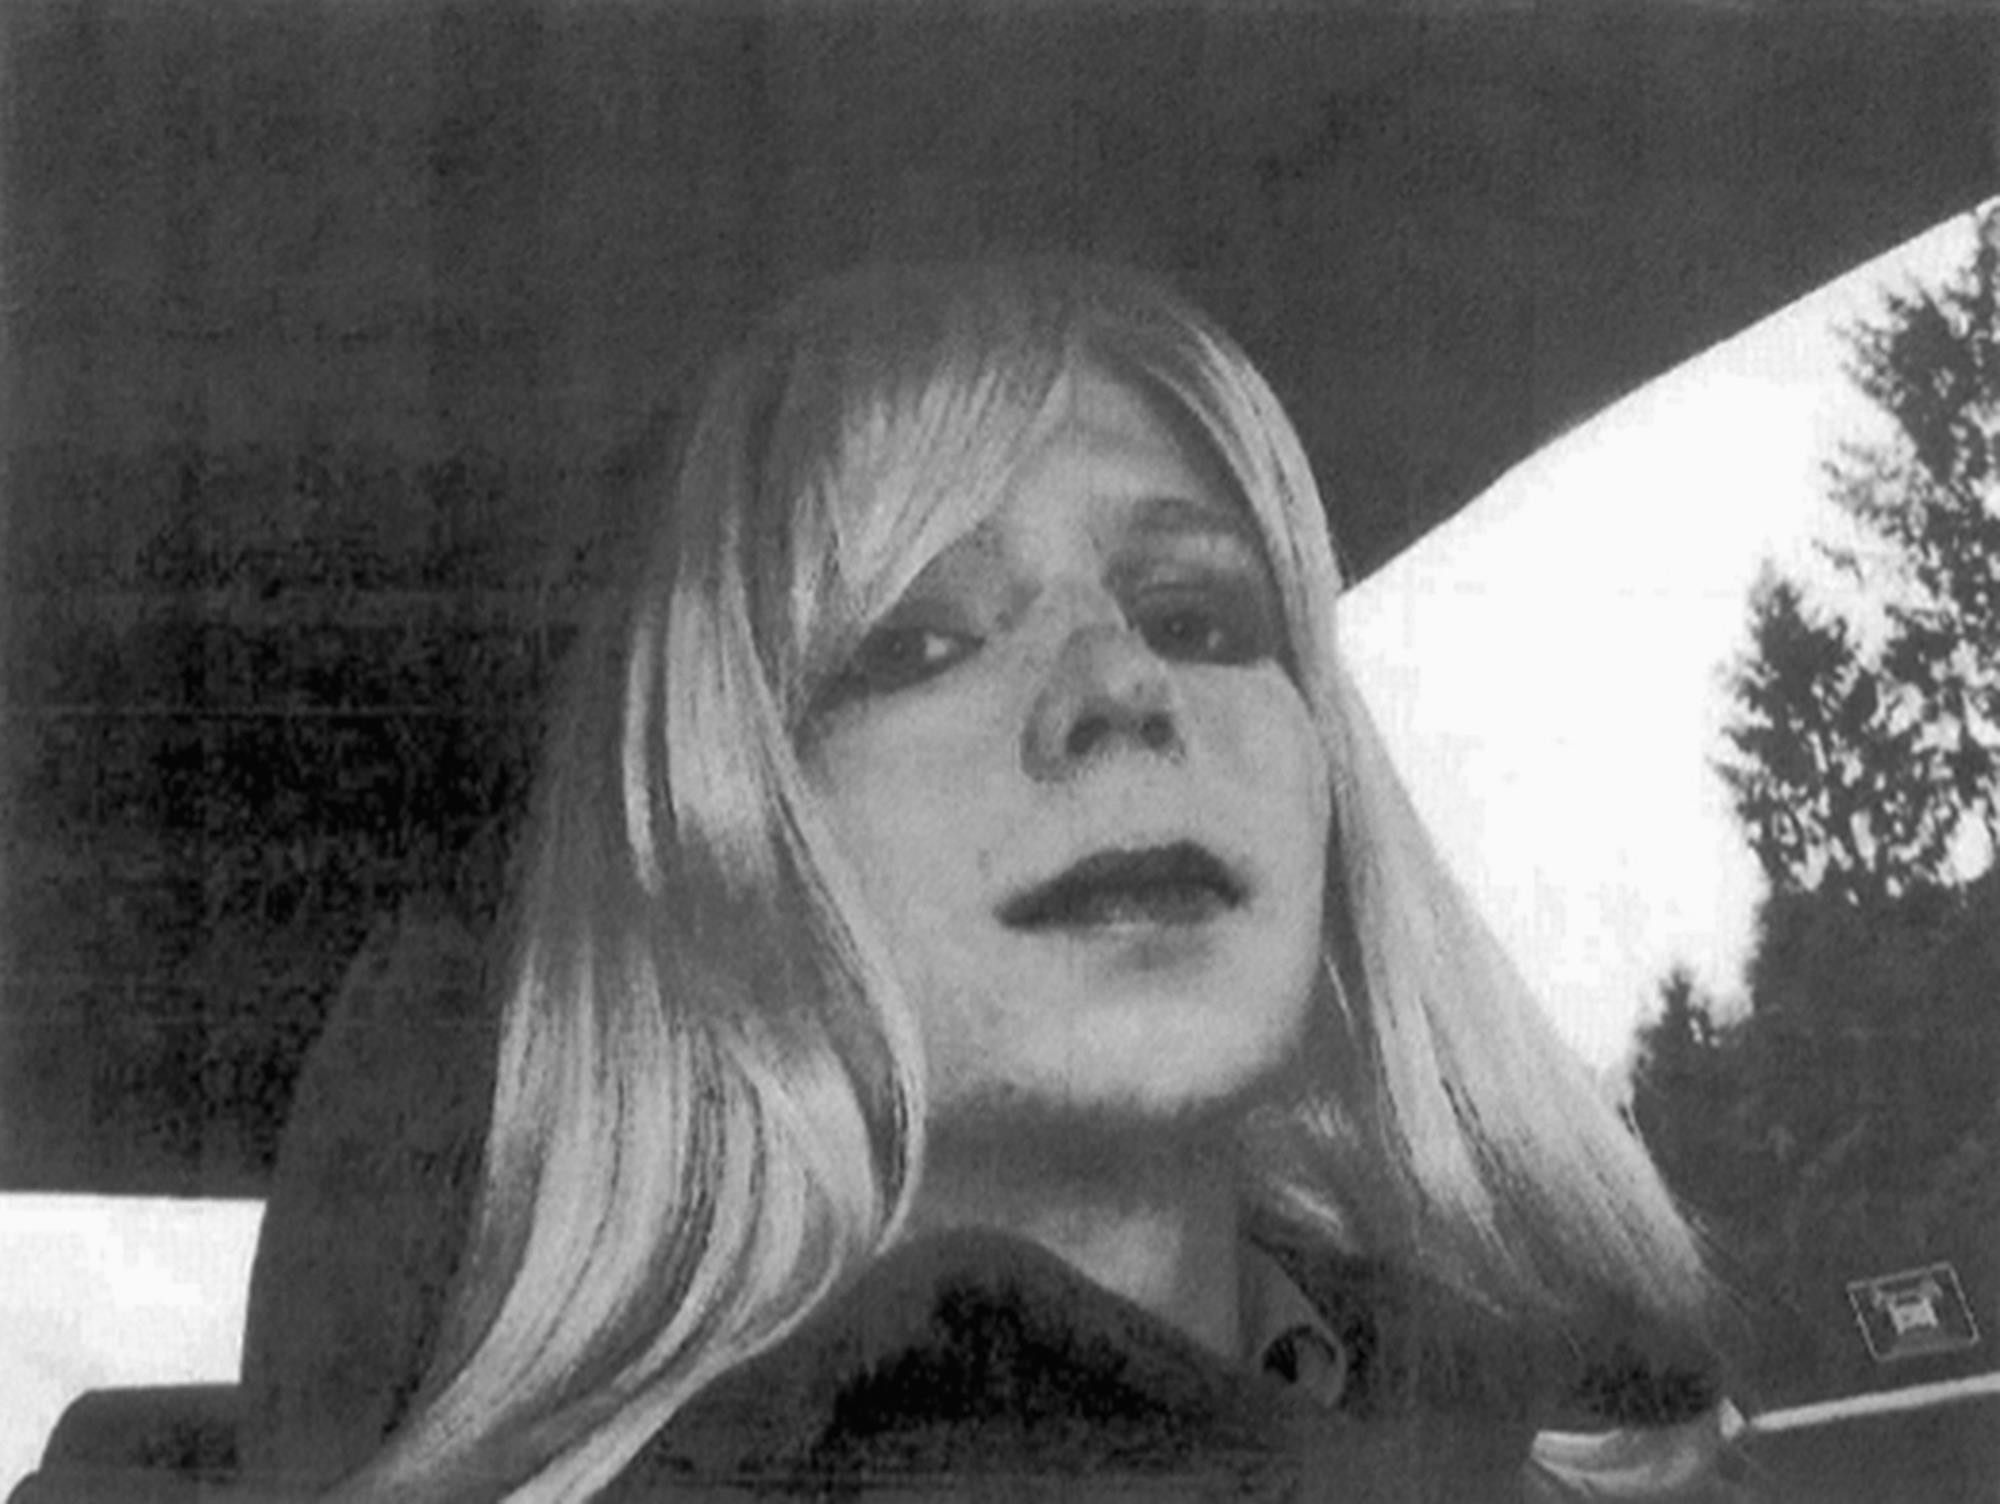 In  this undated file photo provided by the U.S. Army, Pfc. Chelsea Manning poses for a photo wearing a wig and lipstick. (AP Photo)